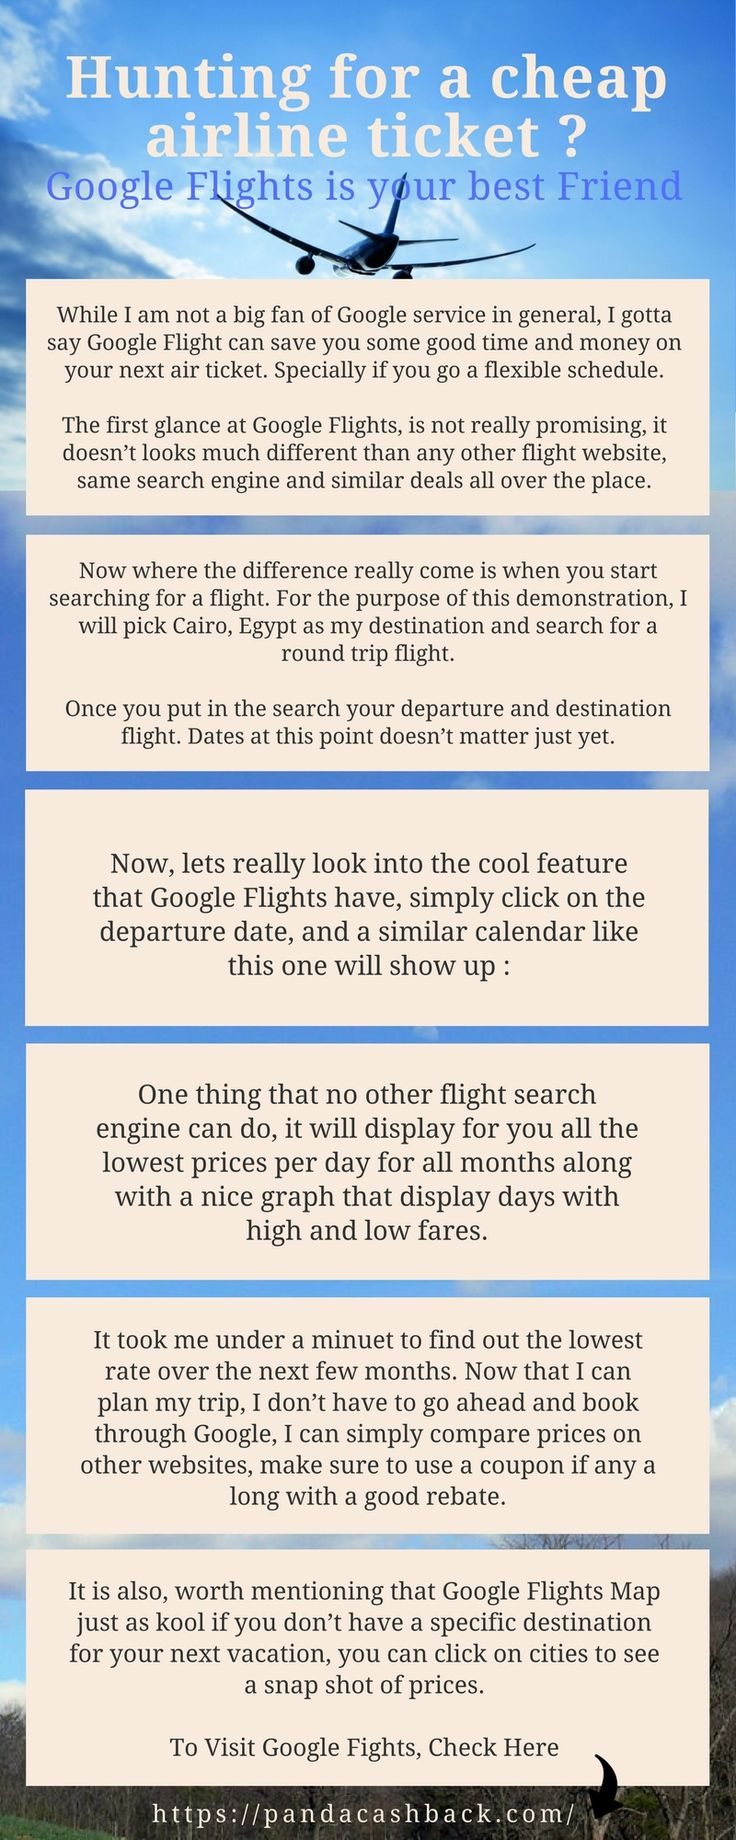 One thing that no other flight search engine can do, it will display for you all the lowest prices per day for all months along with a nice graph that display days with high and low fares.